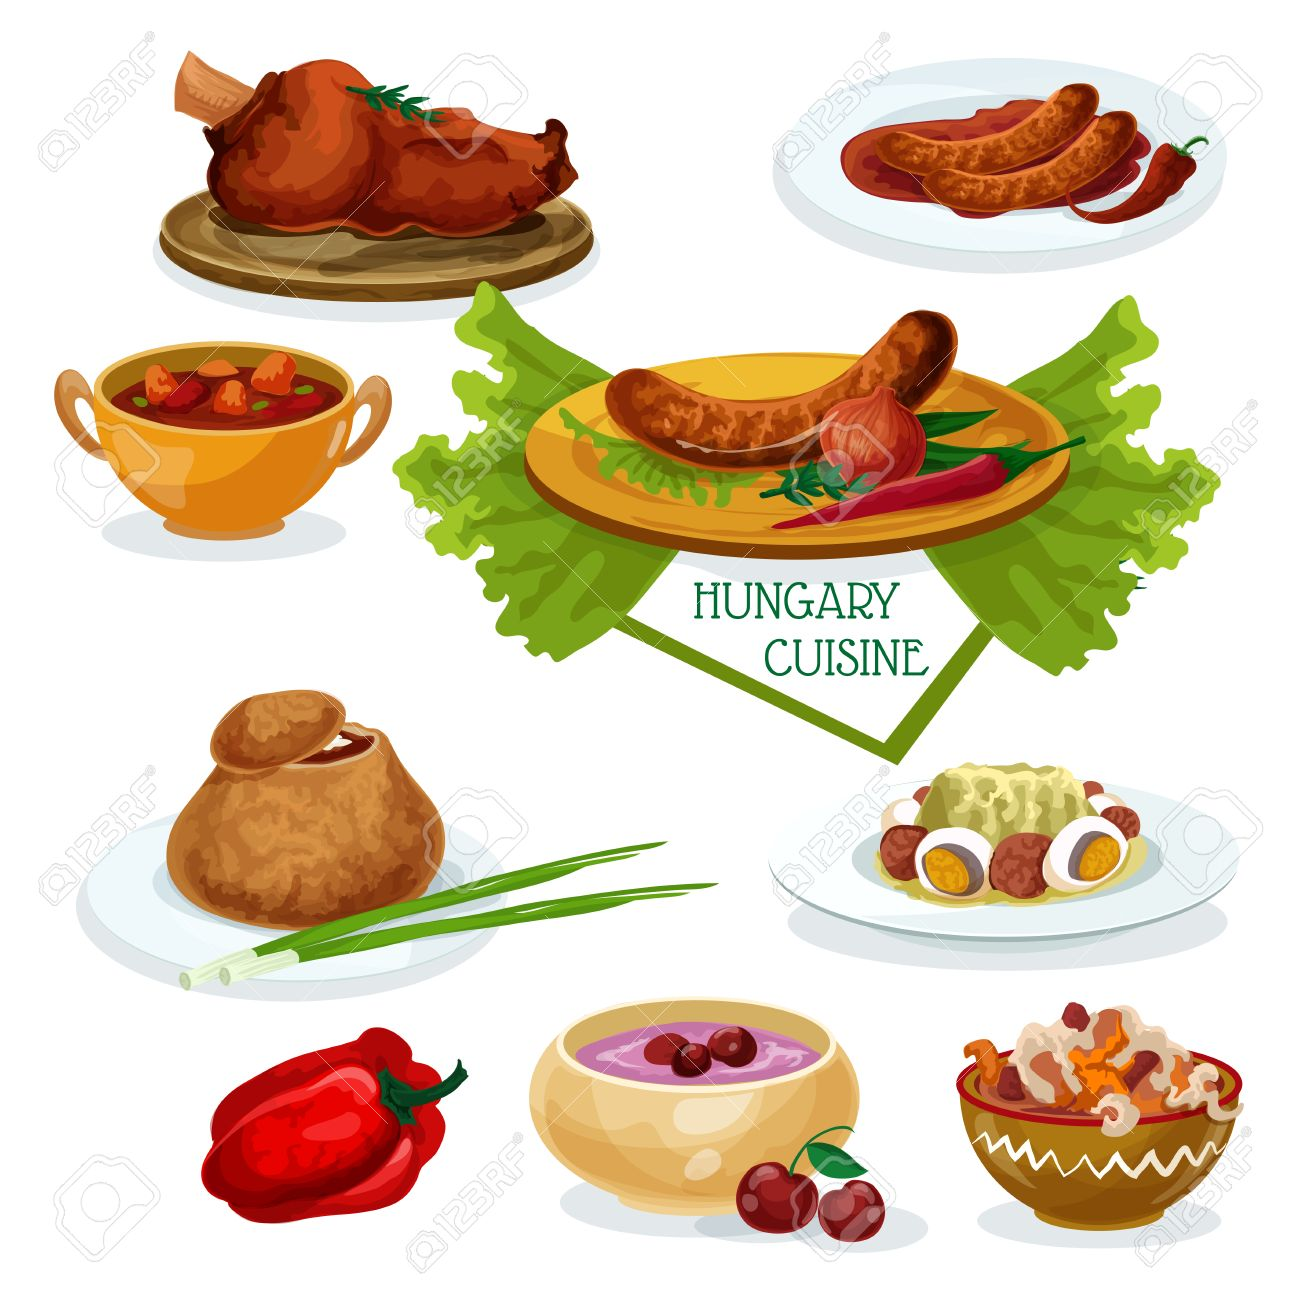 Hungarian Cuisine Menu Cartoon Icon With Beef Goulash Smoked Meat Chilly Sausage Meat